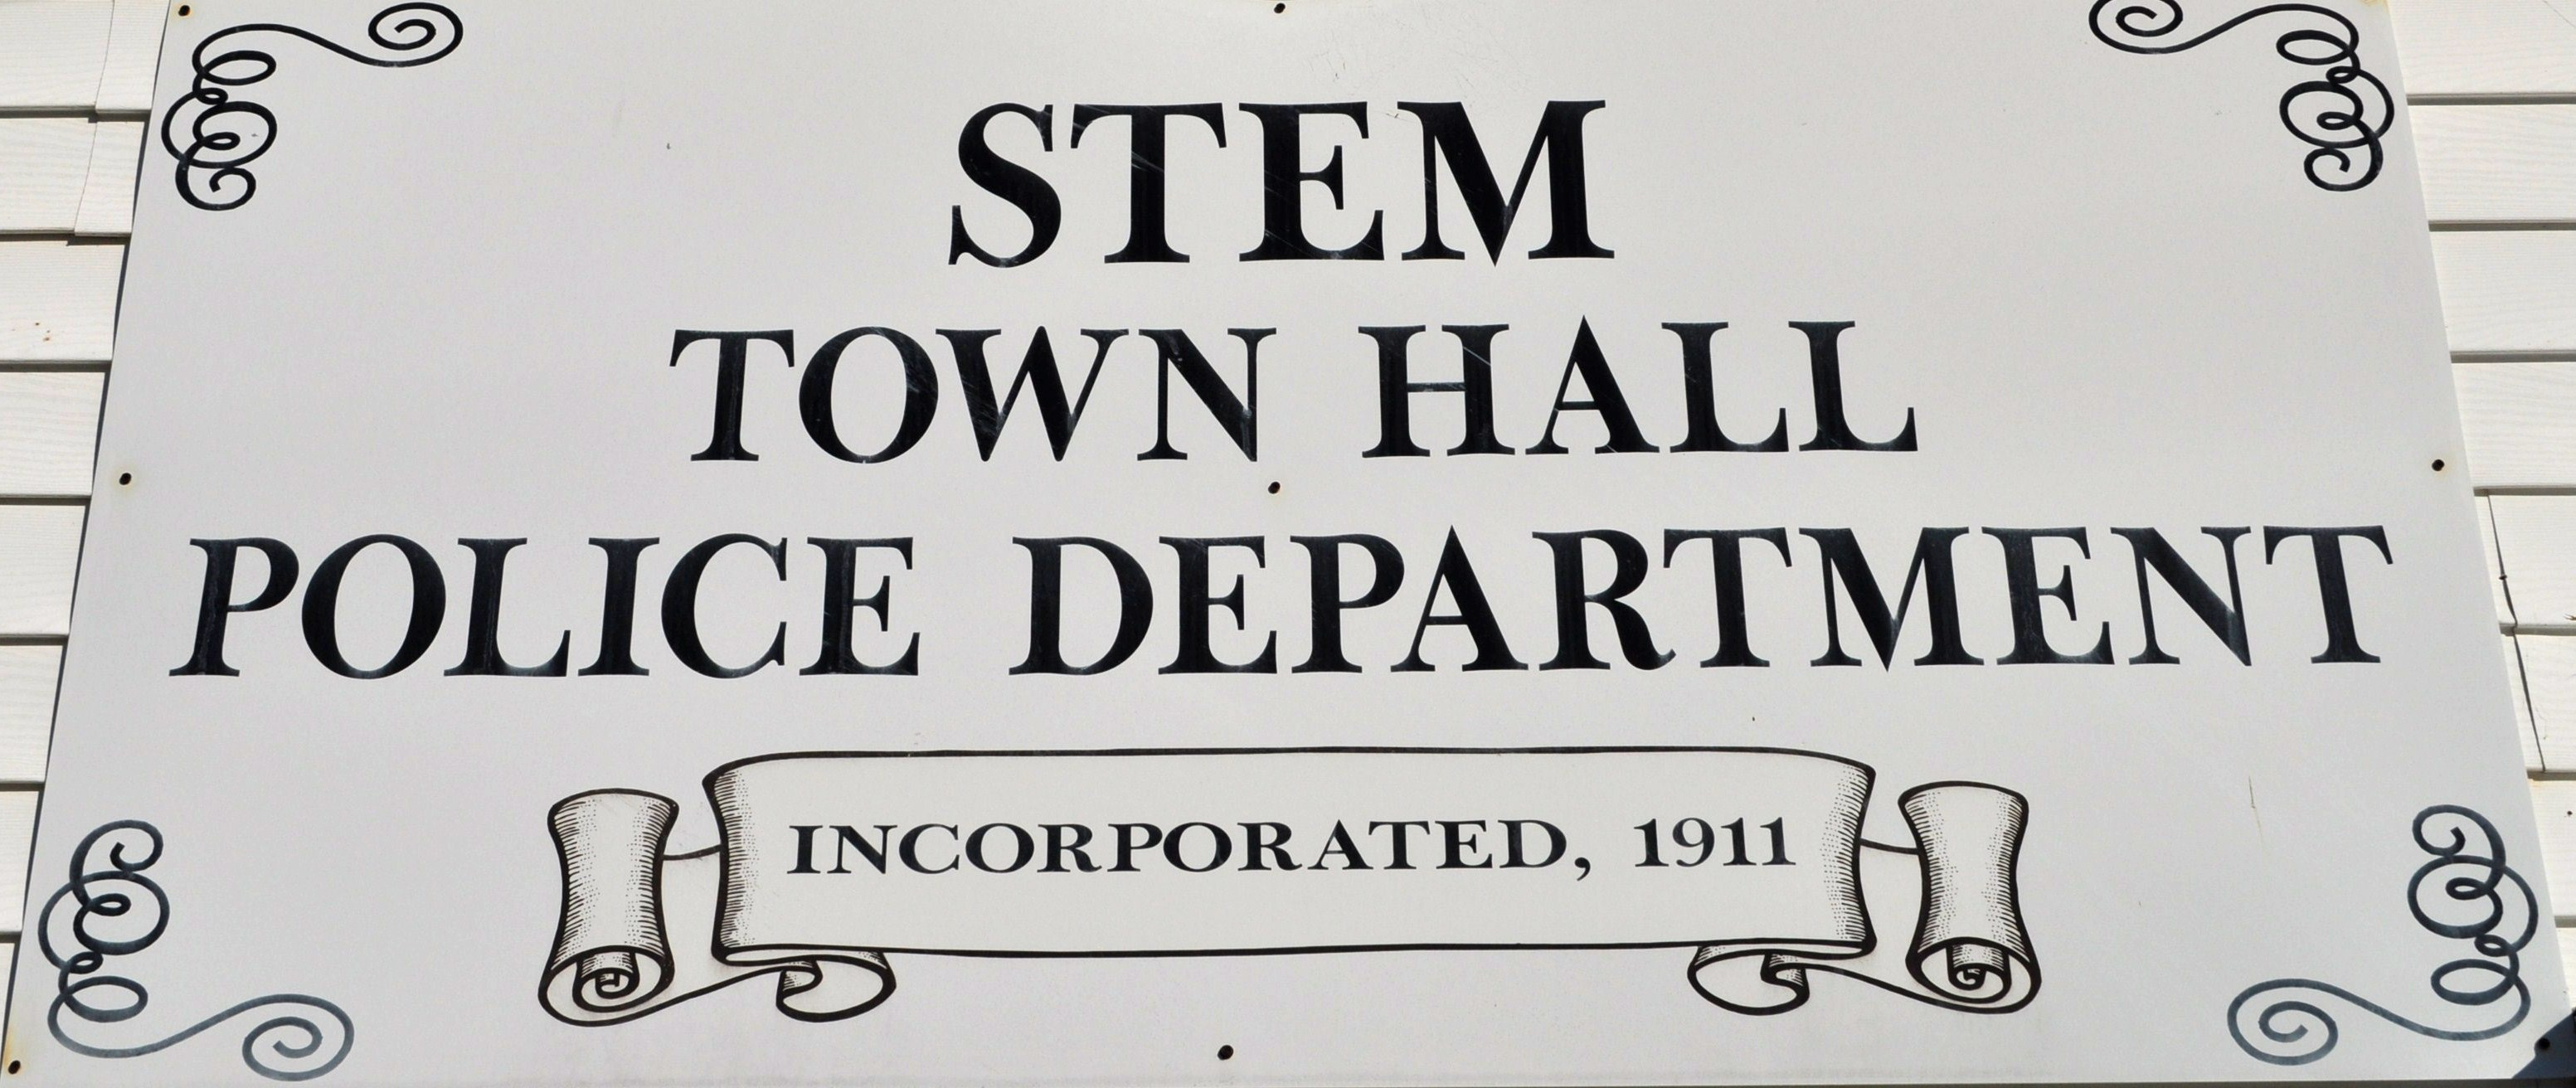 File:Stem Town Hall Sign.jpg - Wikimedia Commonsstem town